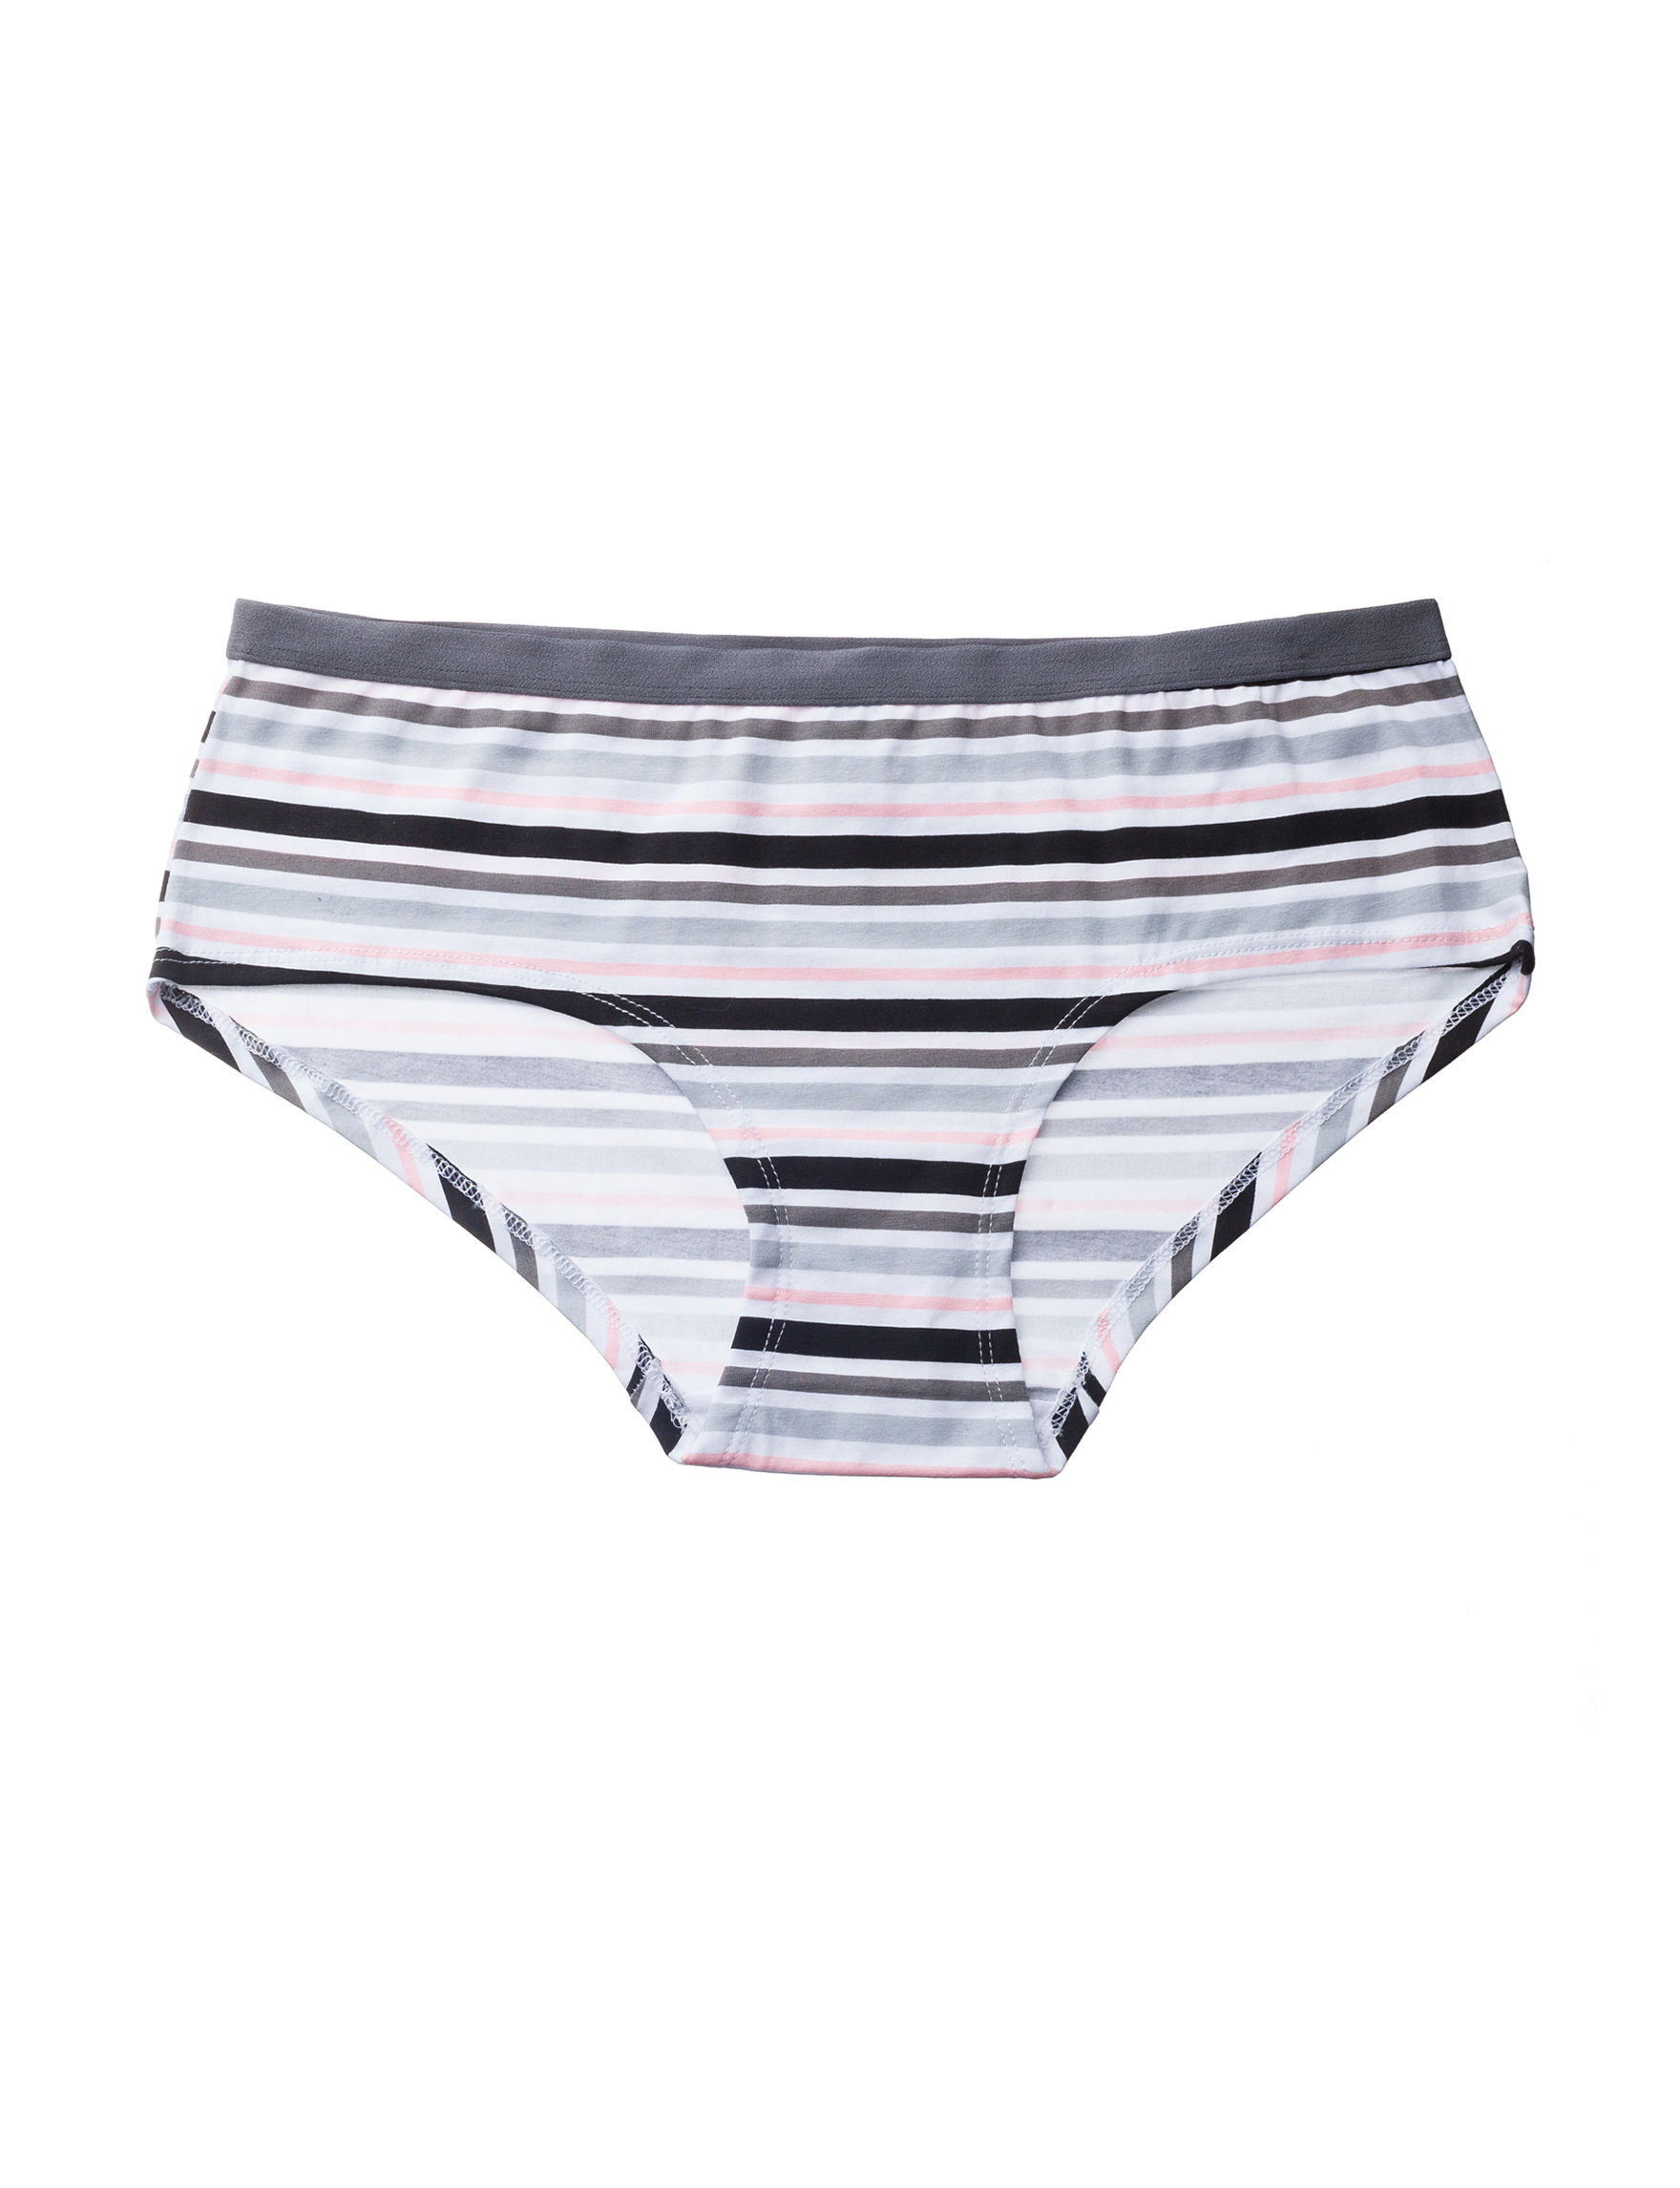 Rene Rofe Grey Stripe Panties Boyshort Seamless